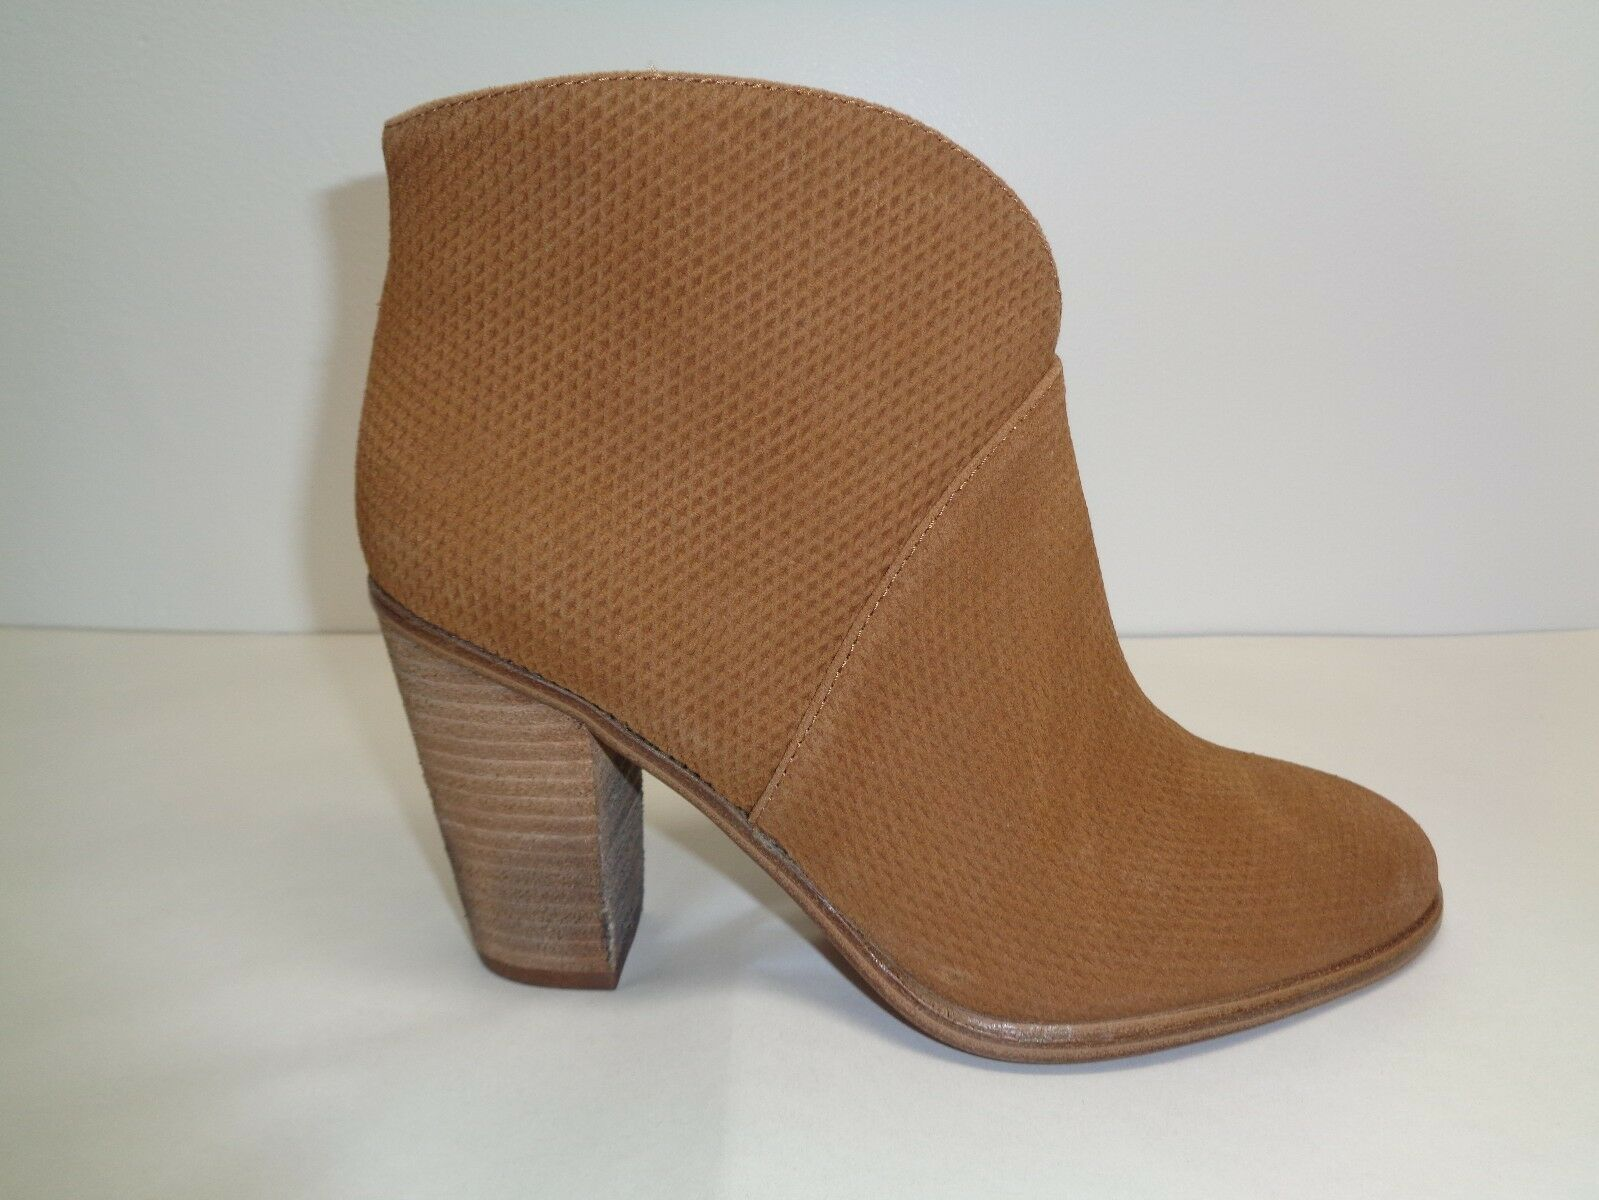 Vince Camuto Size 9.5 M FRANELL Brown Suede Leather Ankle Boots New Womens Shoes